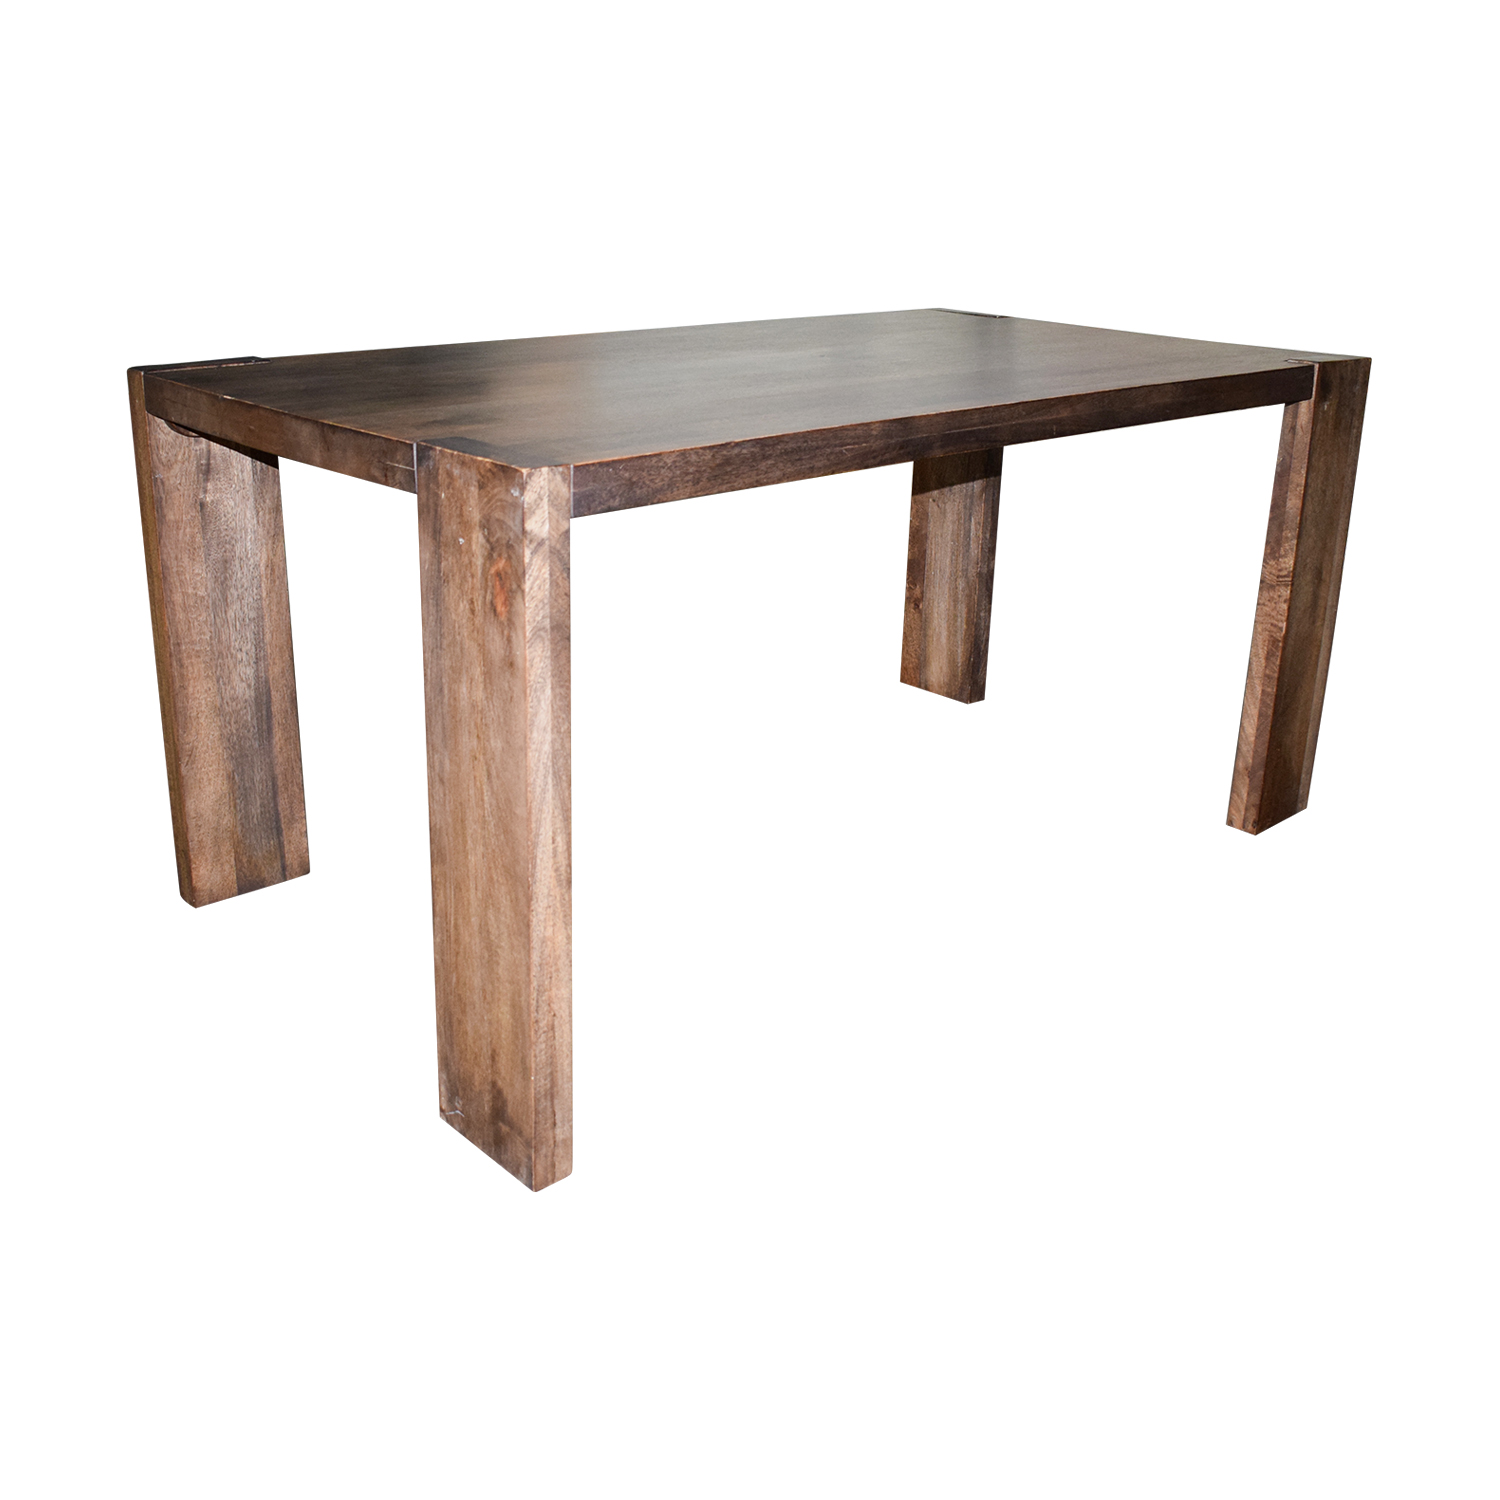 OFF CB2 CB2 Rustic Wood Dining Table Tables